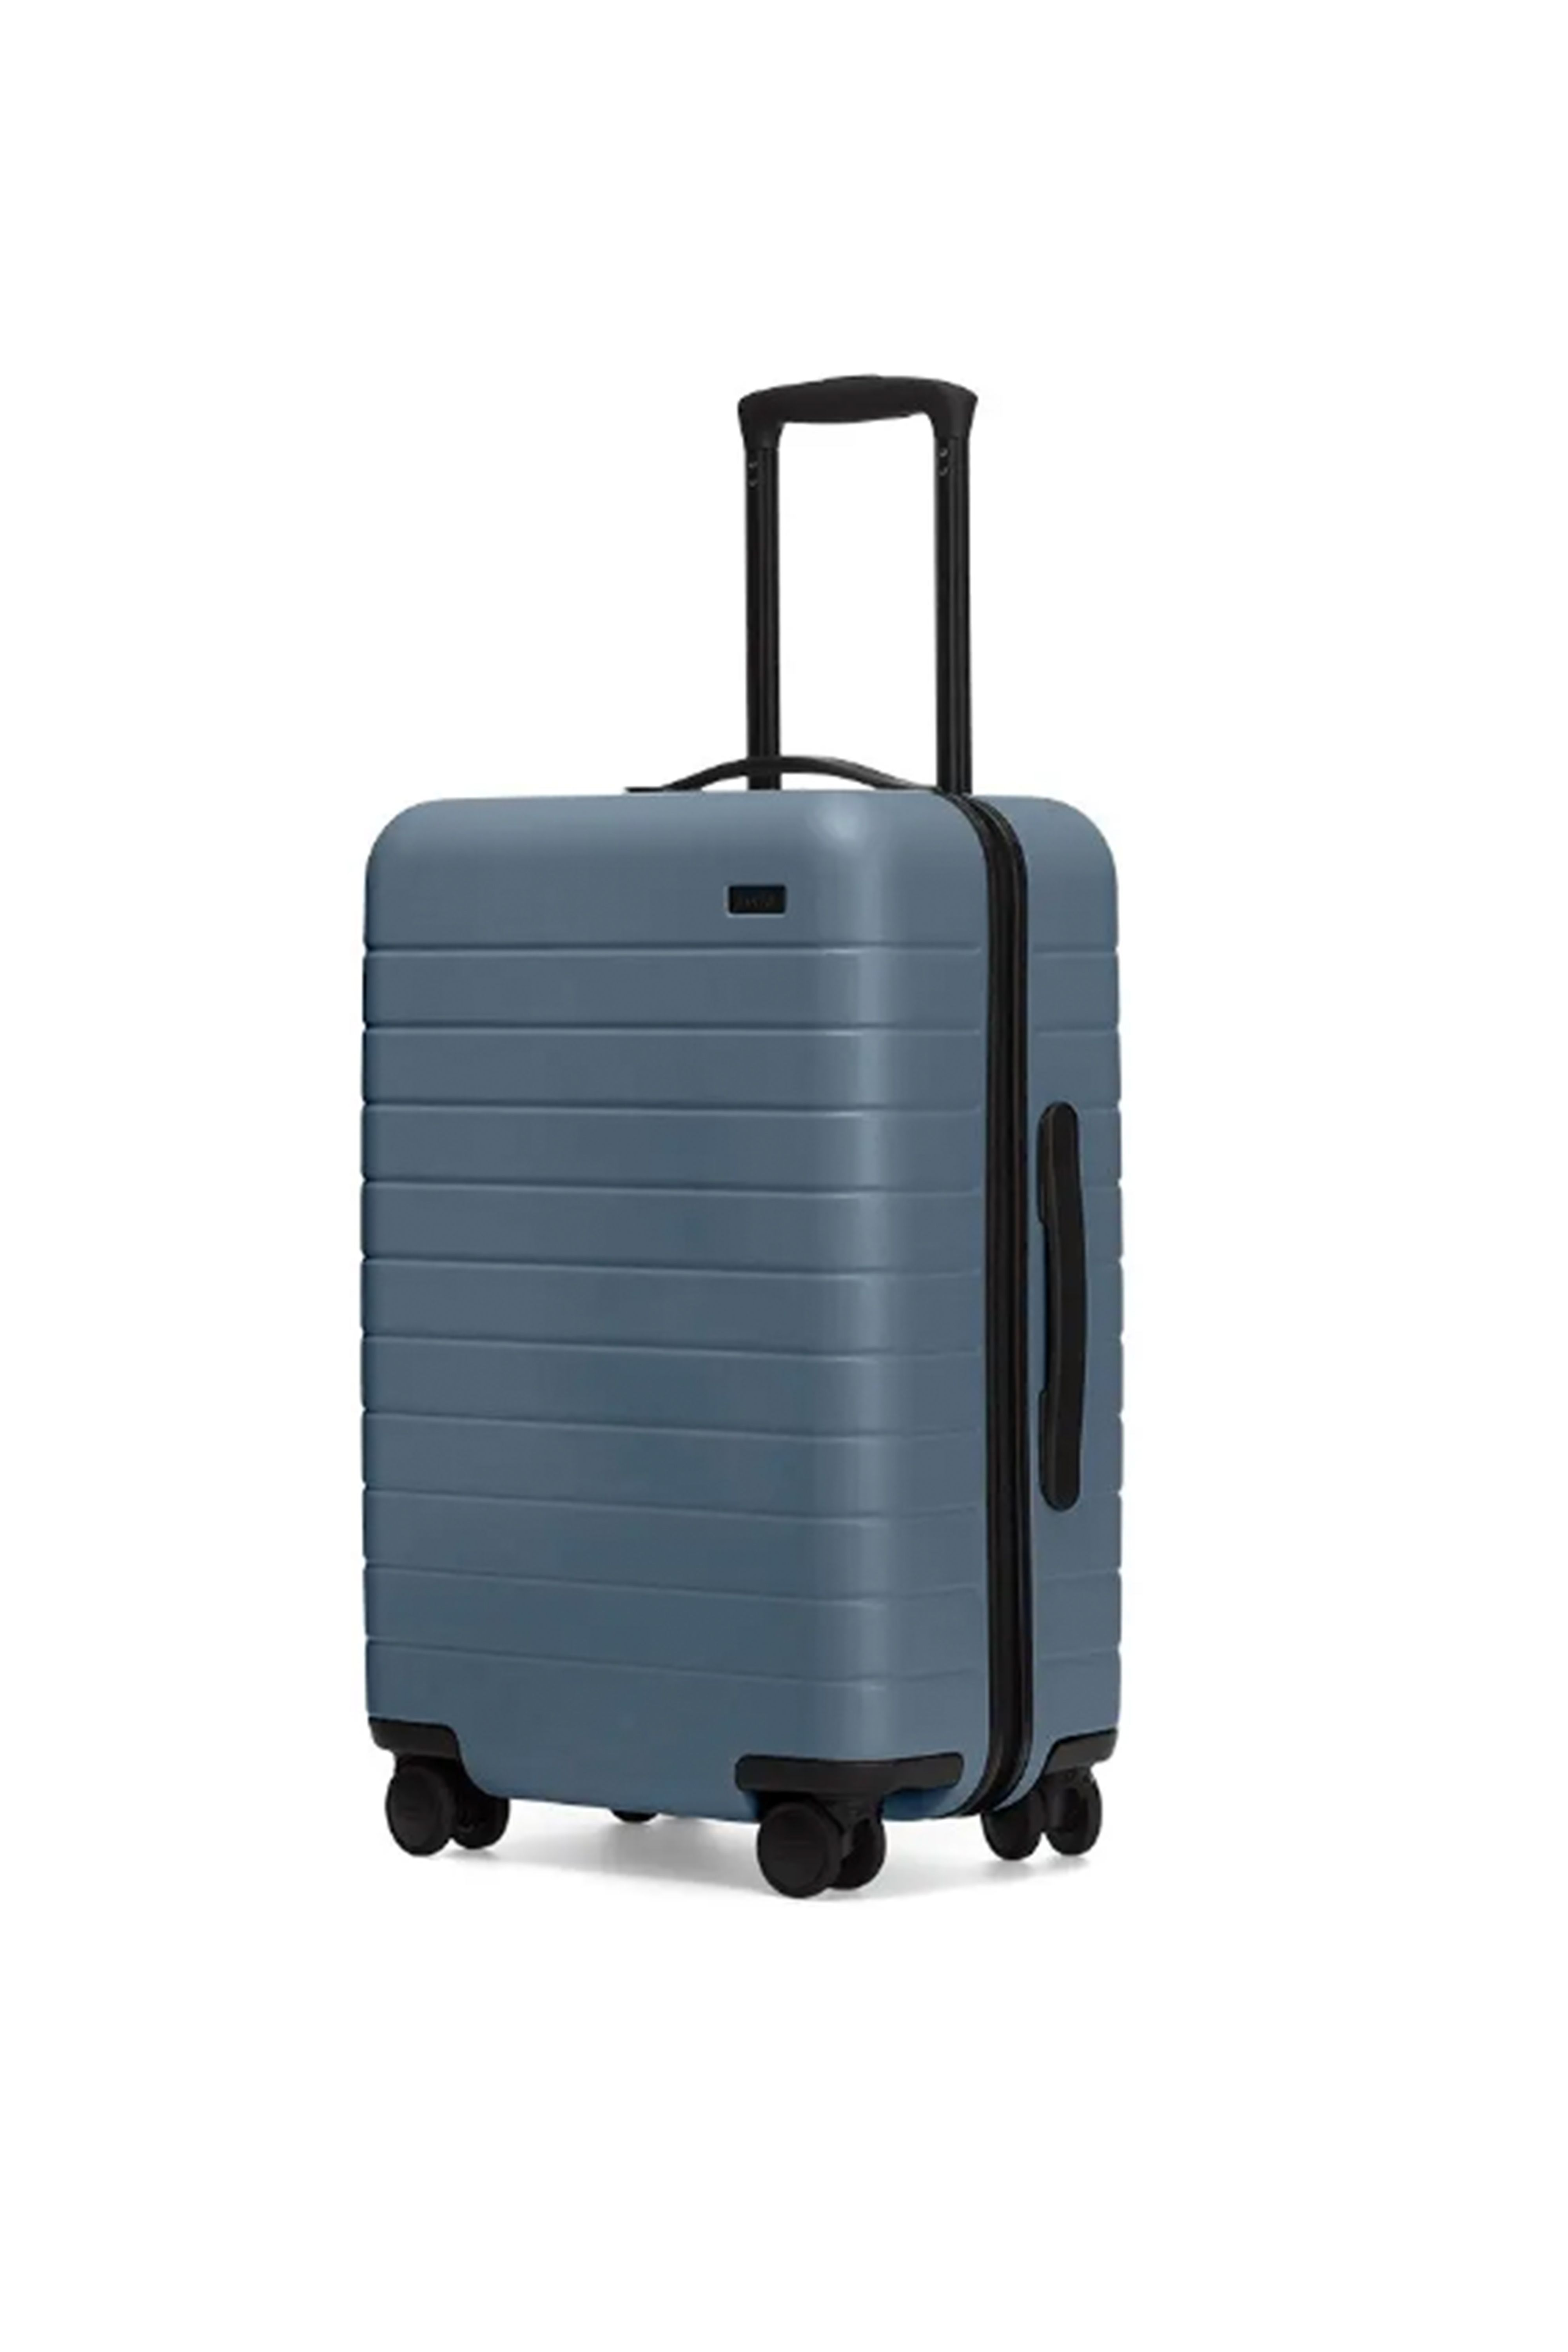 Best Luggage Brands 2020.Away The Bigger Carry On